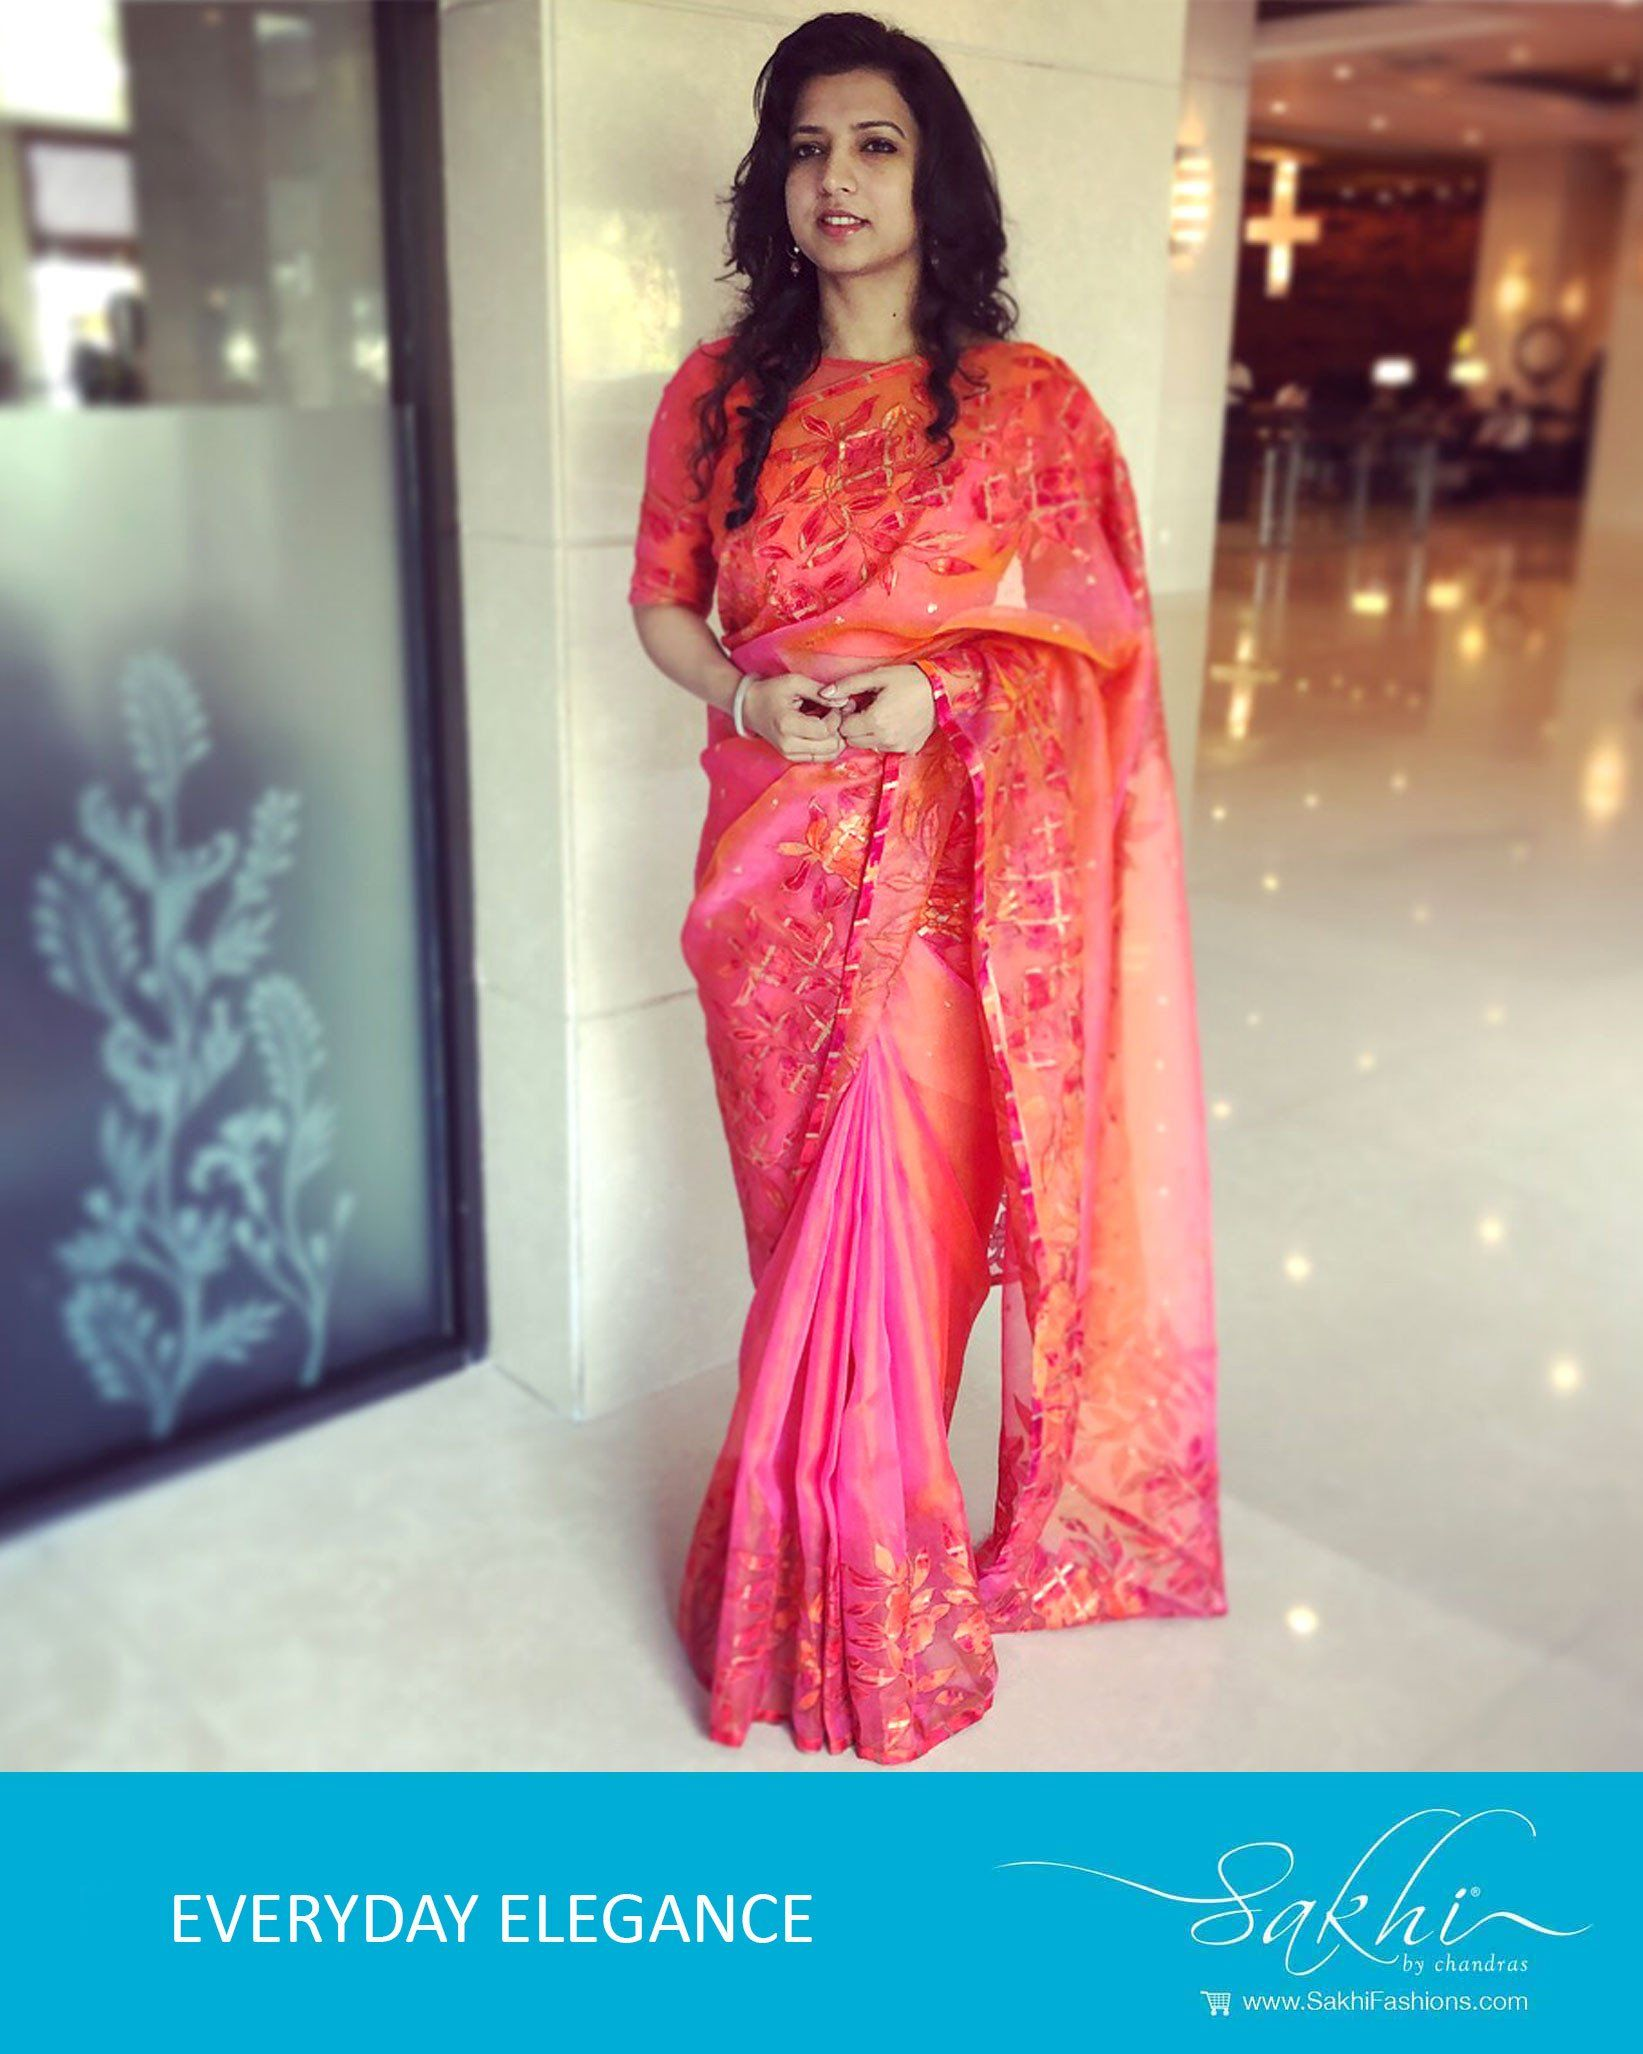 fbf1b58524 Buy Peach & Pink Pure Organza Silk Saree online at Sakhi Fashions. Order  now for free worldwide shipping